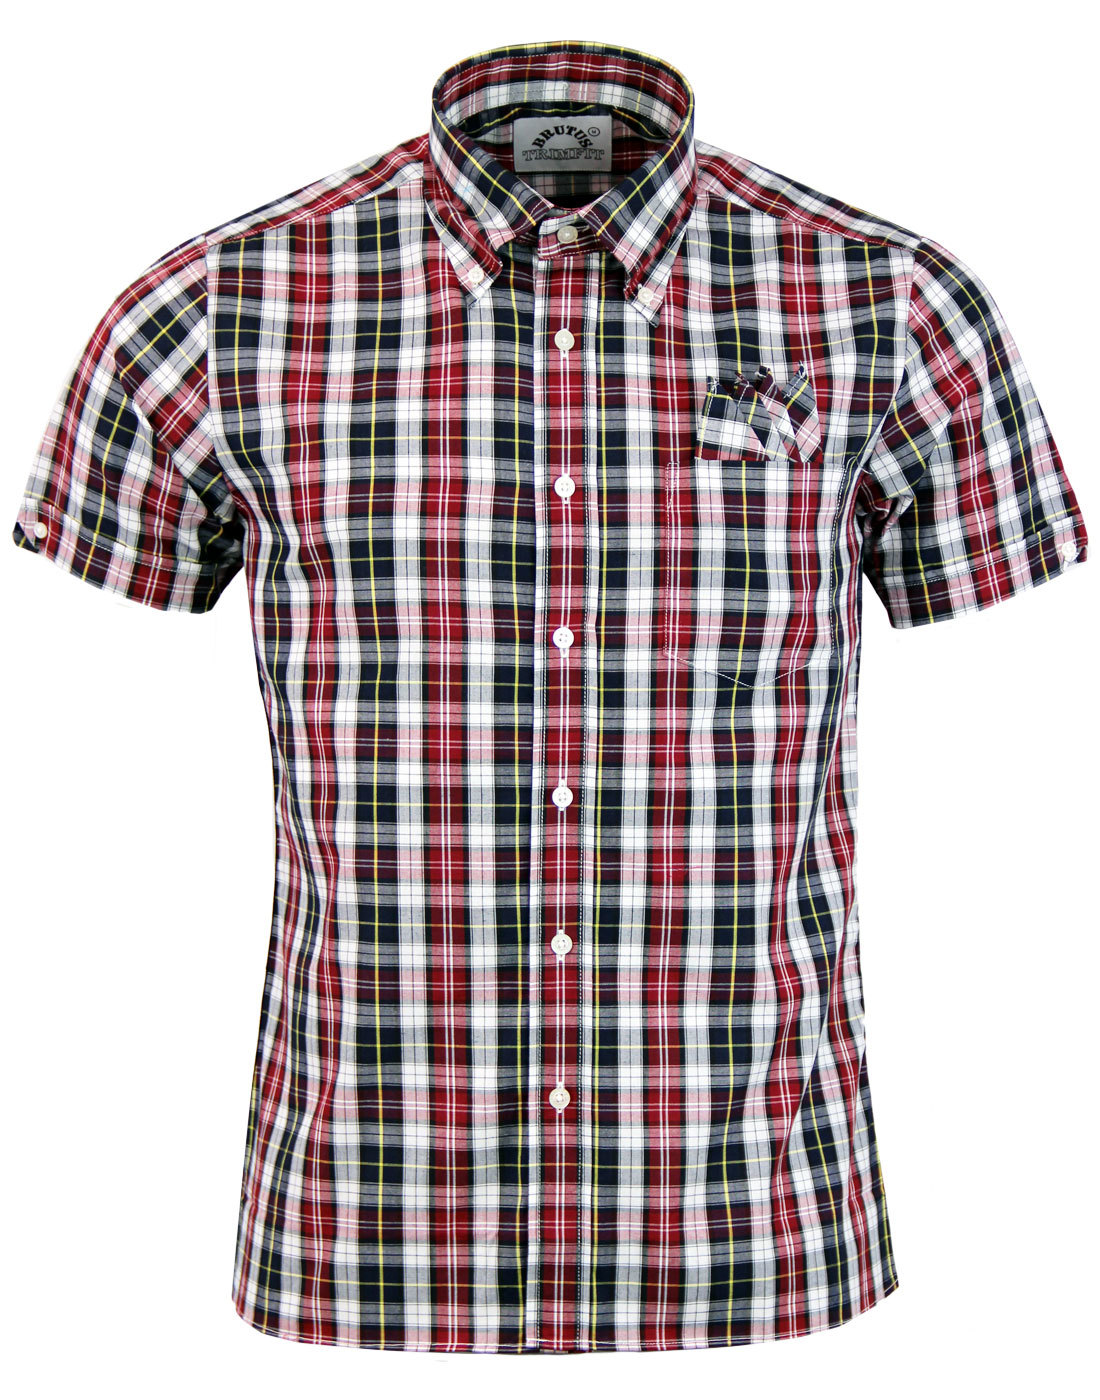 BRUTUS TRIMFIT Mod Button Down Graph Check Shirt